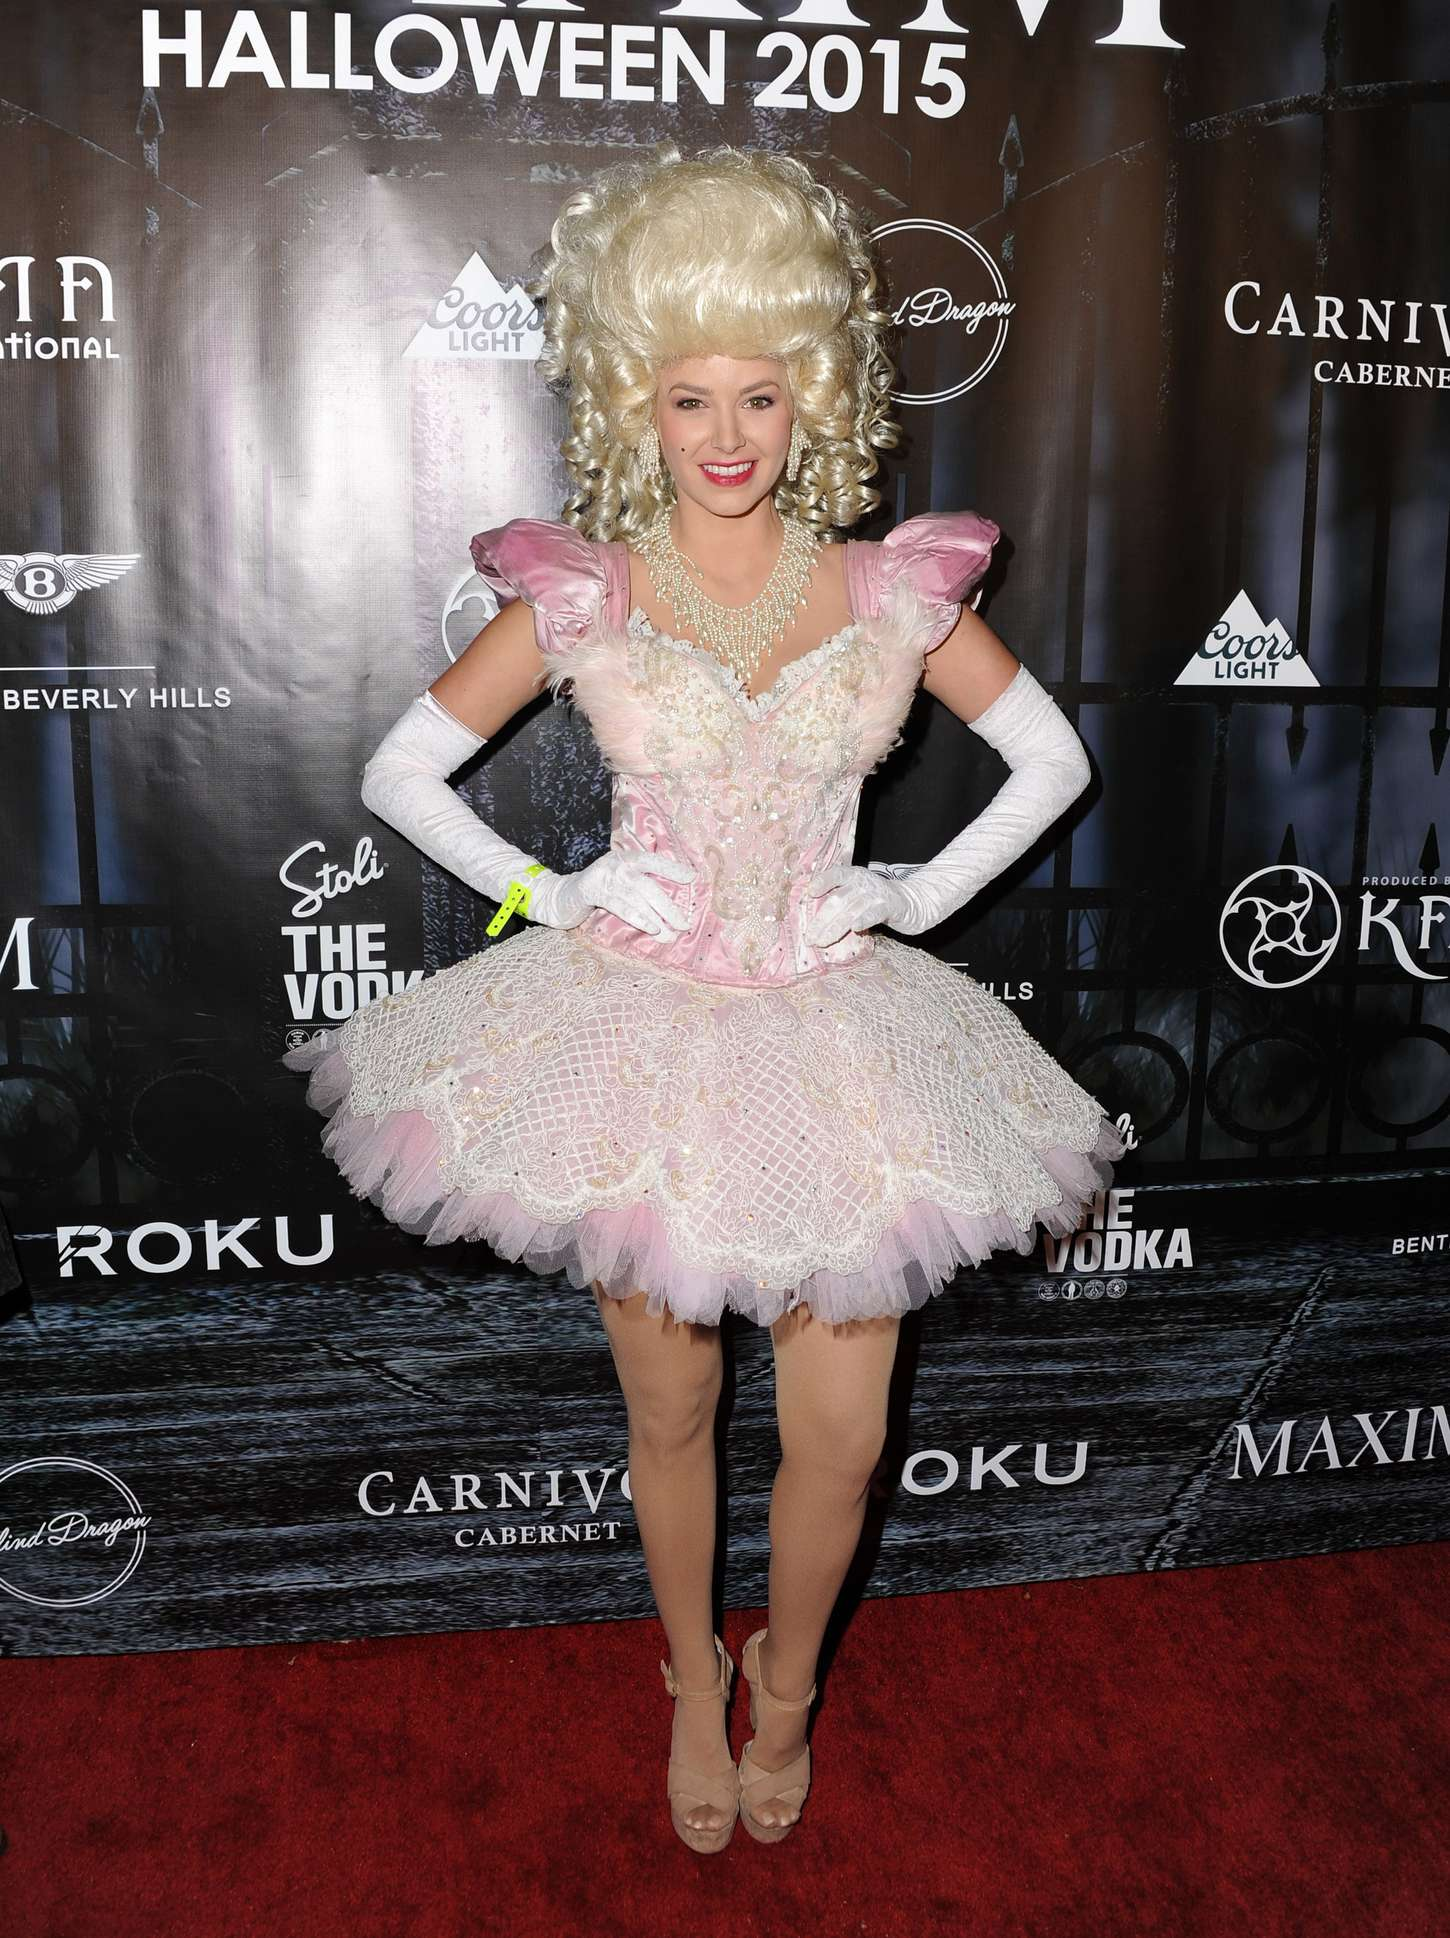 Ariana Madix - MAXIM Magazine's Official Halloween Party in Beverly Hills